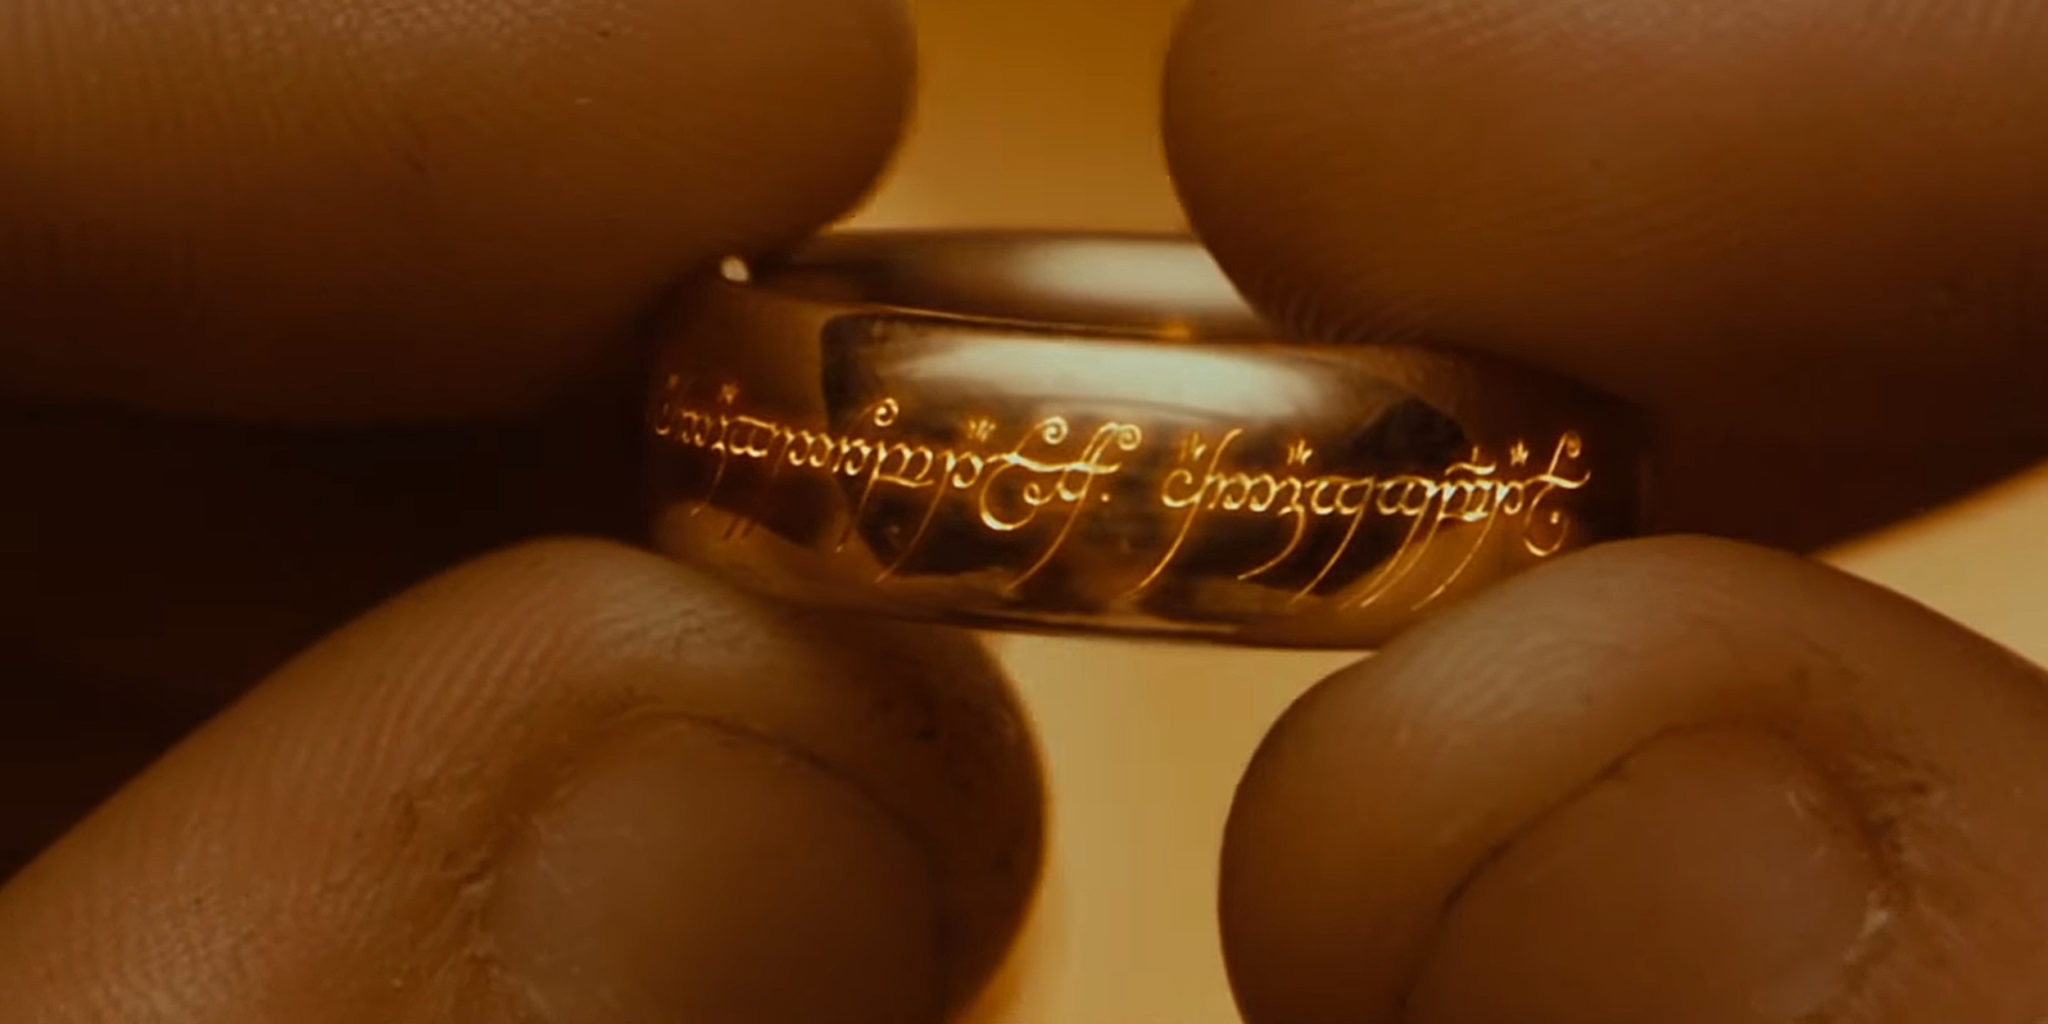 One ring to guide them... into production?